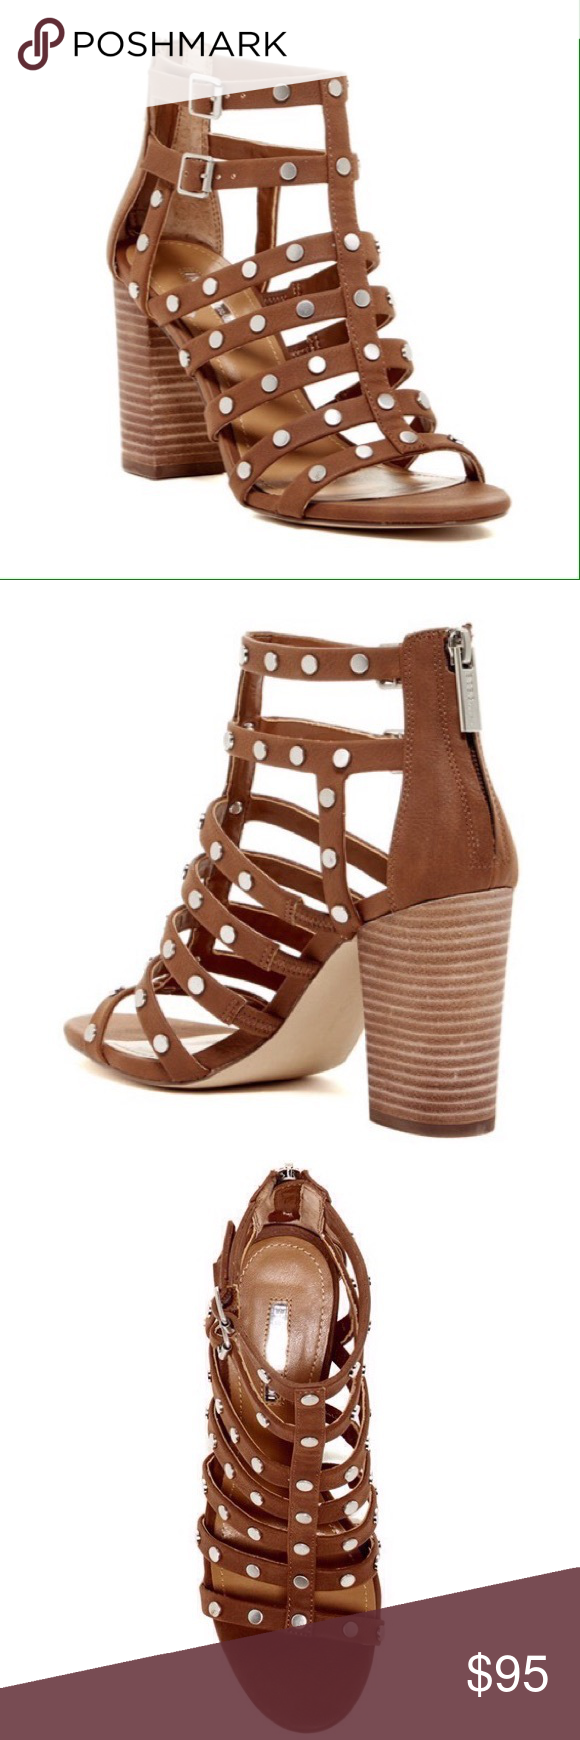 ☂BCBGENERATION Brown Cage Style Platform Heels These are brand new with original box and packaging.  These have never been worn.  They are in perfect condition! BCBGeneration Shoes Platforms